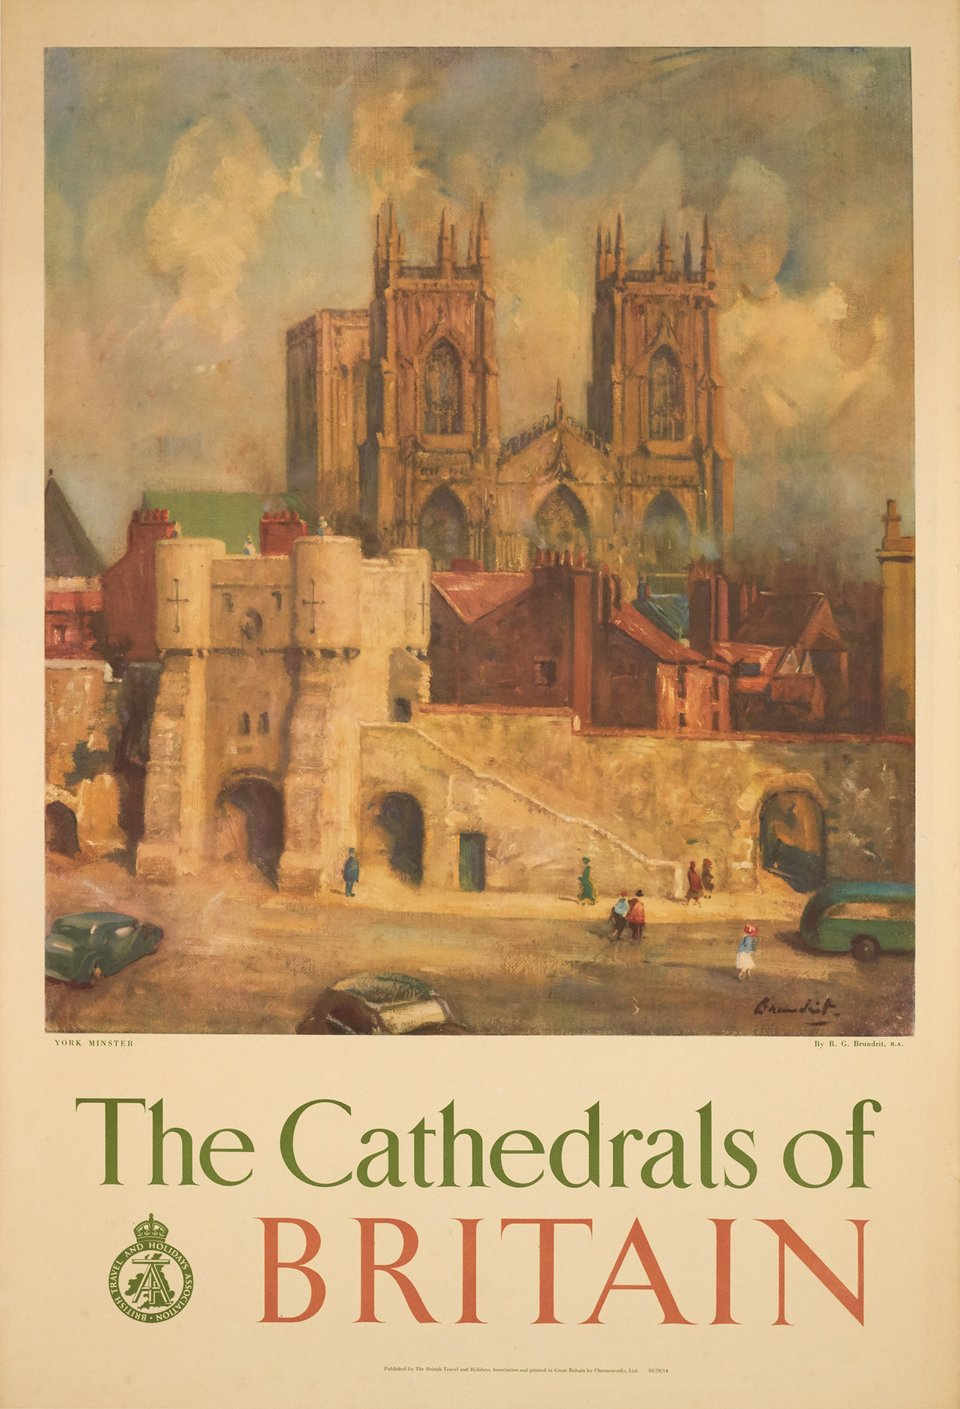 The Cathedrals of Britain, British Travel and Holidays Association – Affiche ancienne – R. G. BRUNDRIT – 1950